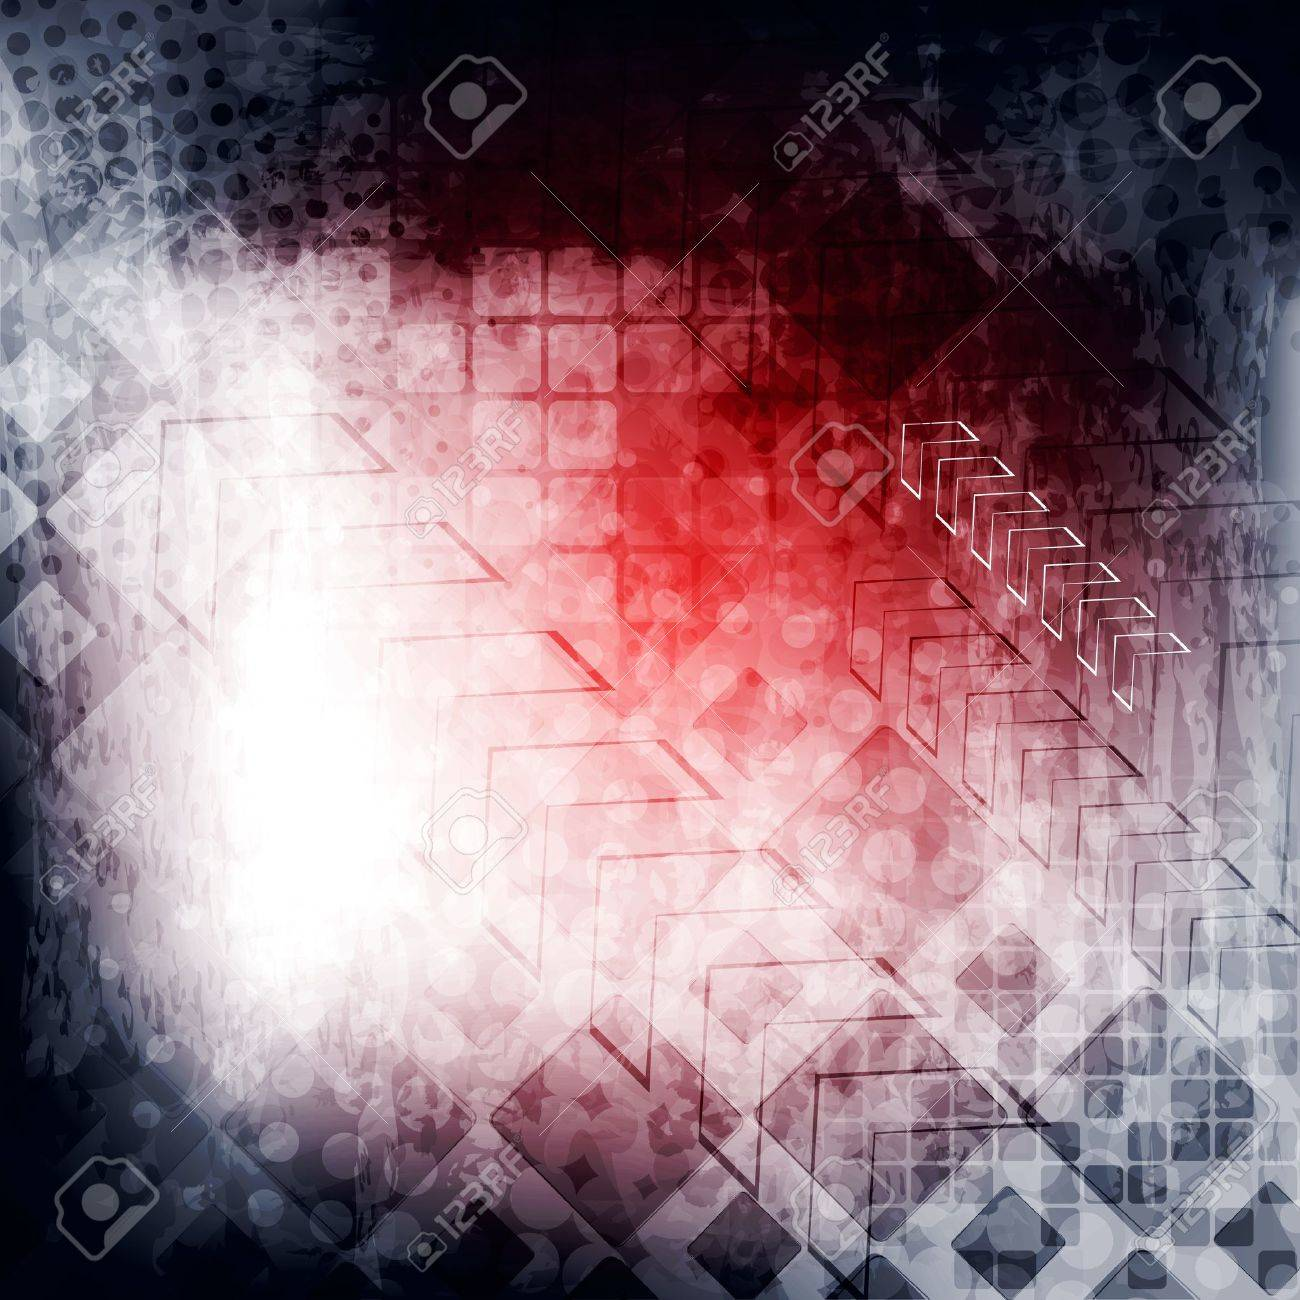 Abstract tech grunge background. Stock Vector - 16827717